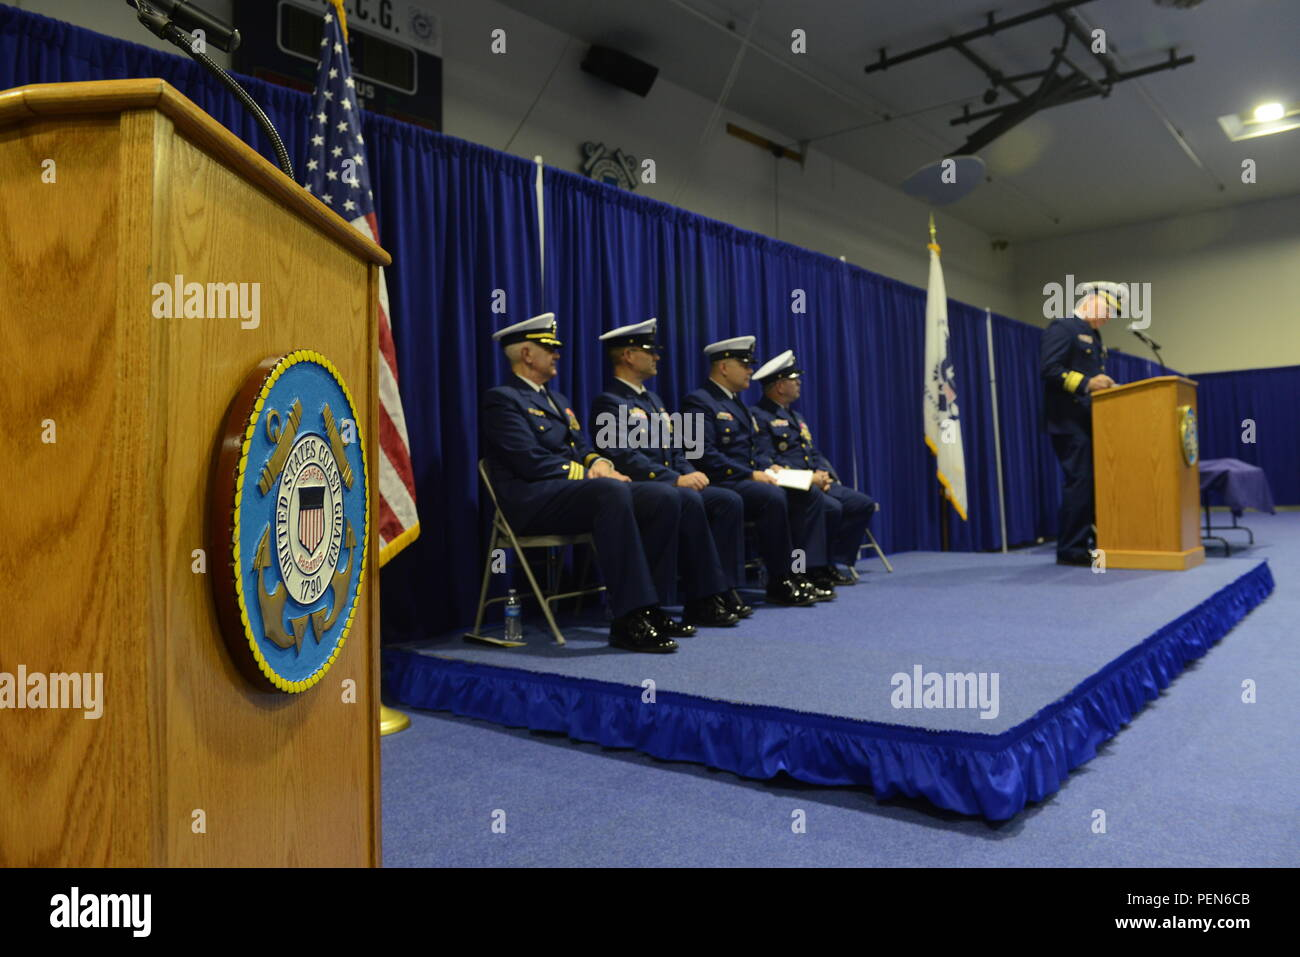 Rear Adm. Richard Gromlich, commander, Coast Guard 13th District, addresses attendees during a change-of-watch ceremony at Coast Guard Base Seattle Dec. 18, 2015. During the ceremony, Master Chief Petty Officer Charles Lindsey transferred authority as command master chief of the Coast Guard 13th District to Master Chief Petty Officer Sean McPhilamy, who reported from his prior position as command master chief of Coast Guard Base Kodiak, Alaska. (U.S. Coast Guard photo by Seaman Sarah Wilson) - Stock Image